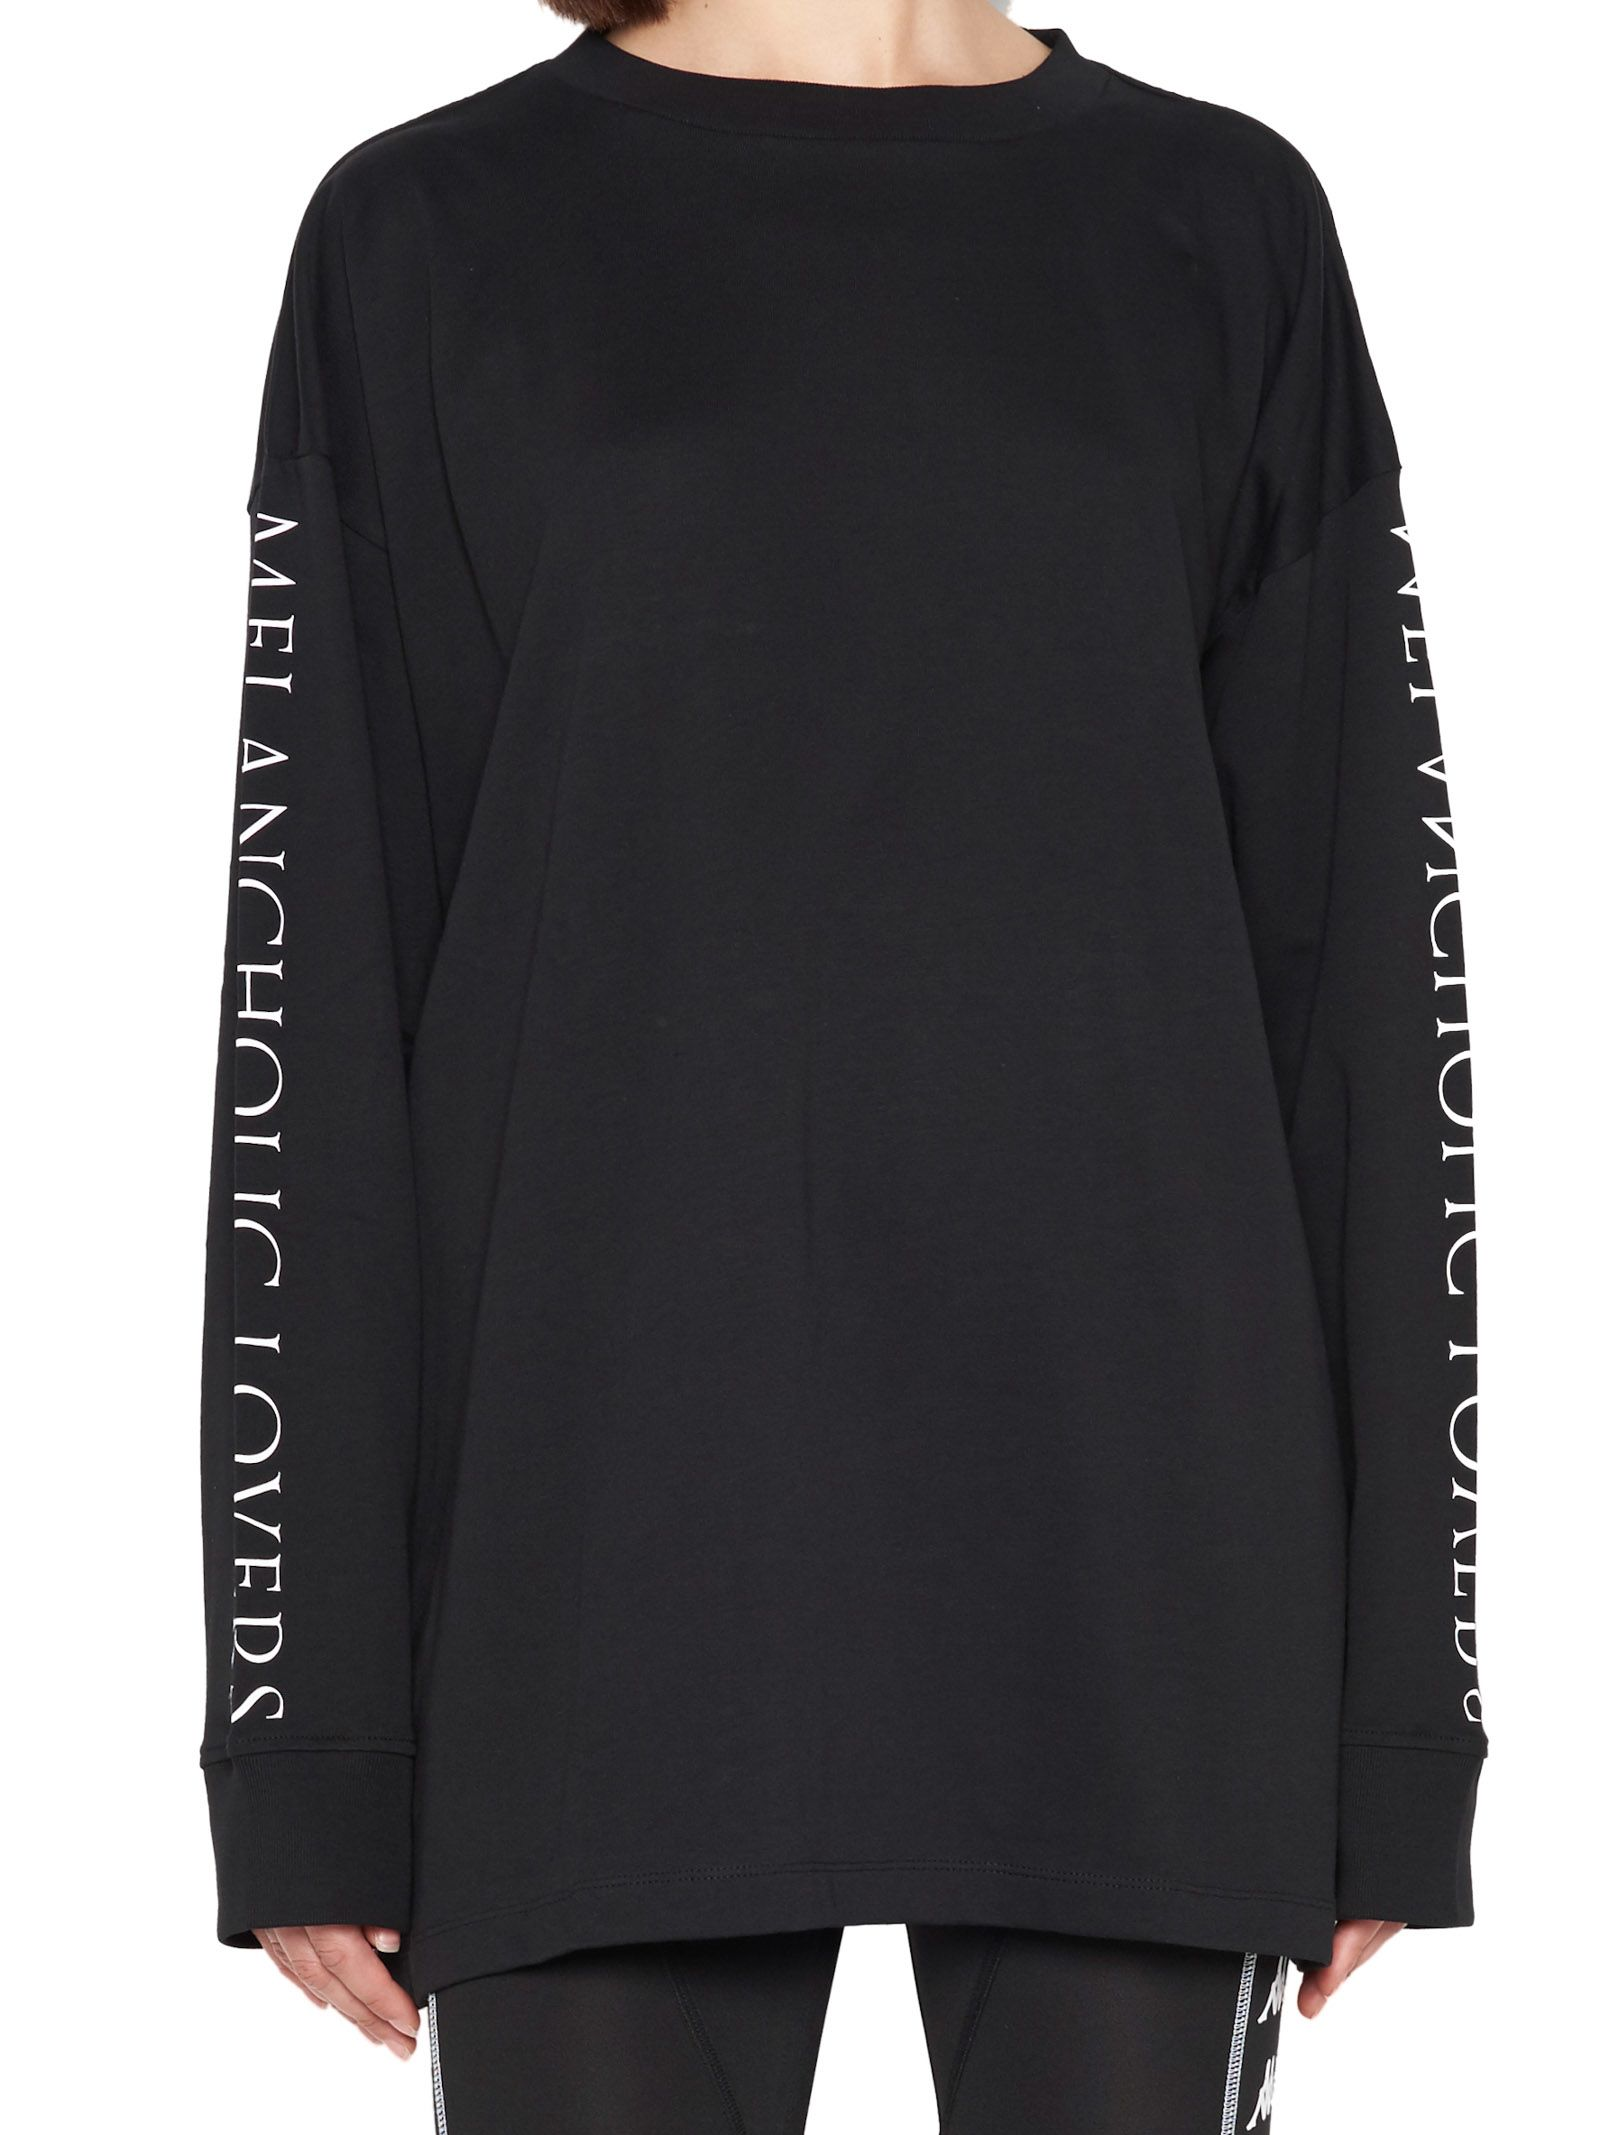 Marcelo Burlon Long Sleeve T-shirt